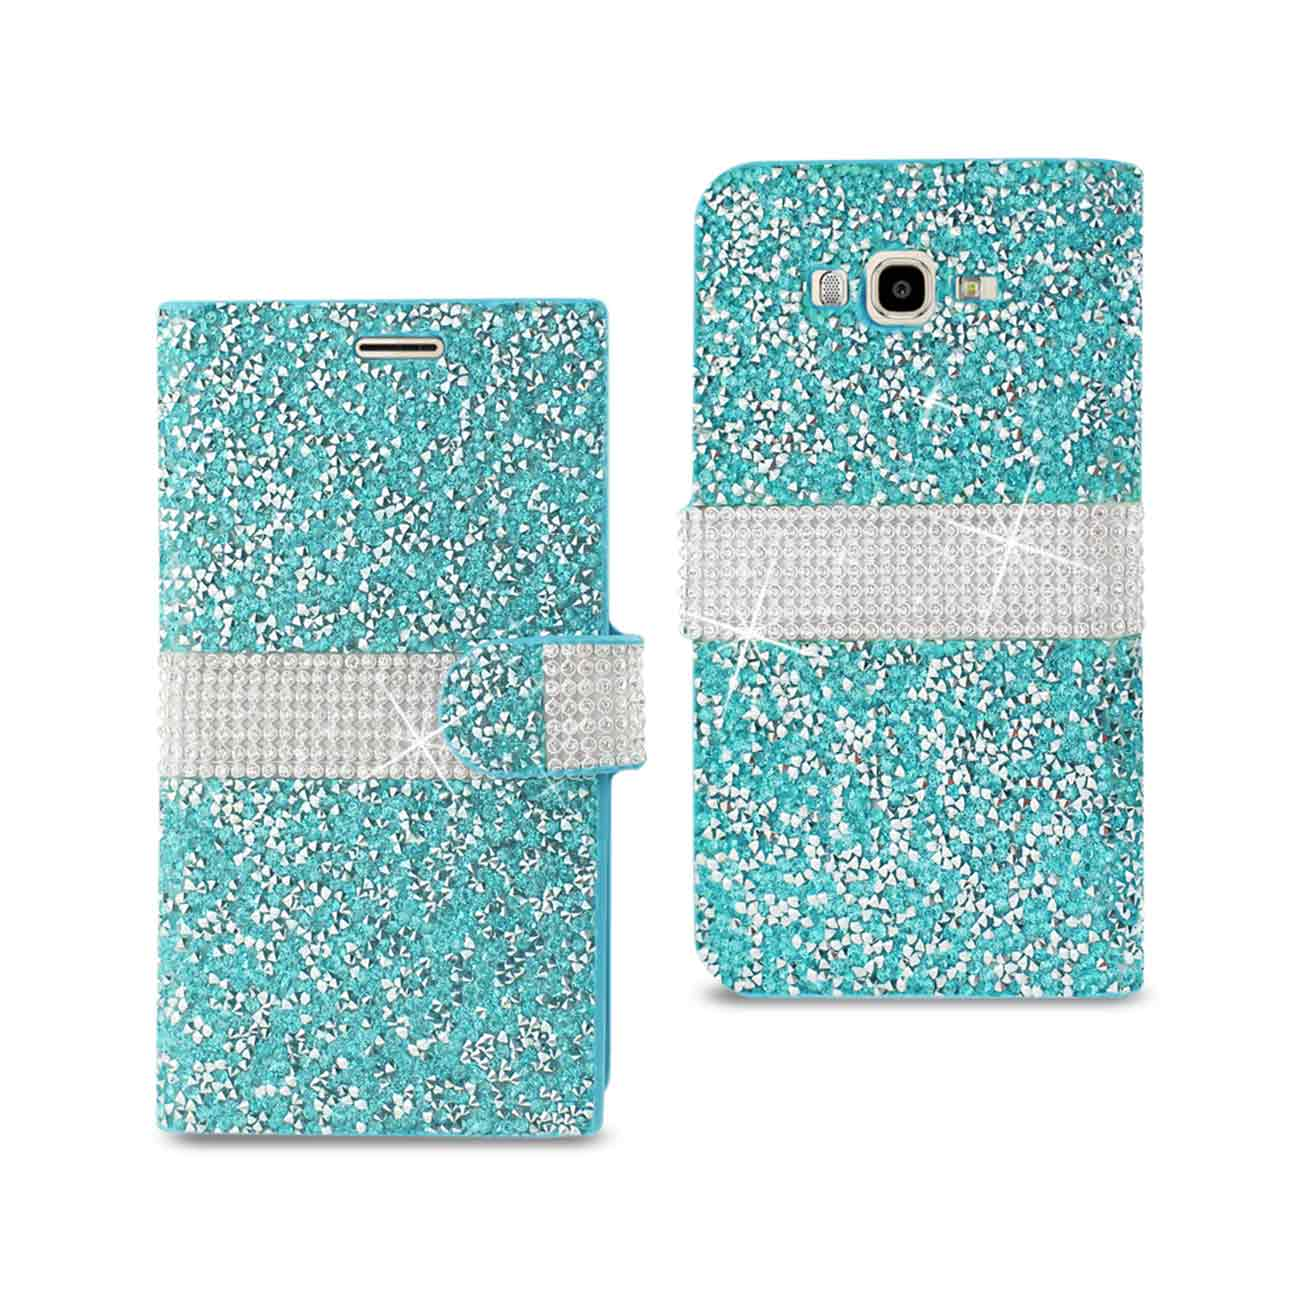 SAMSUNG GALAXY J7 JEWELRY RHINESTONE WALLET CASE IN BLUE